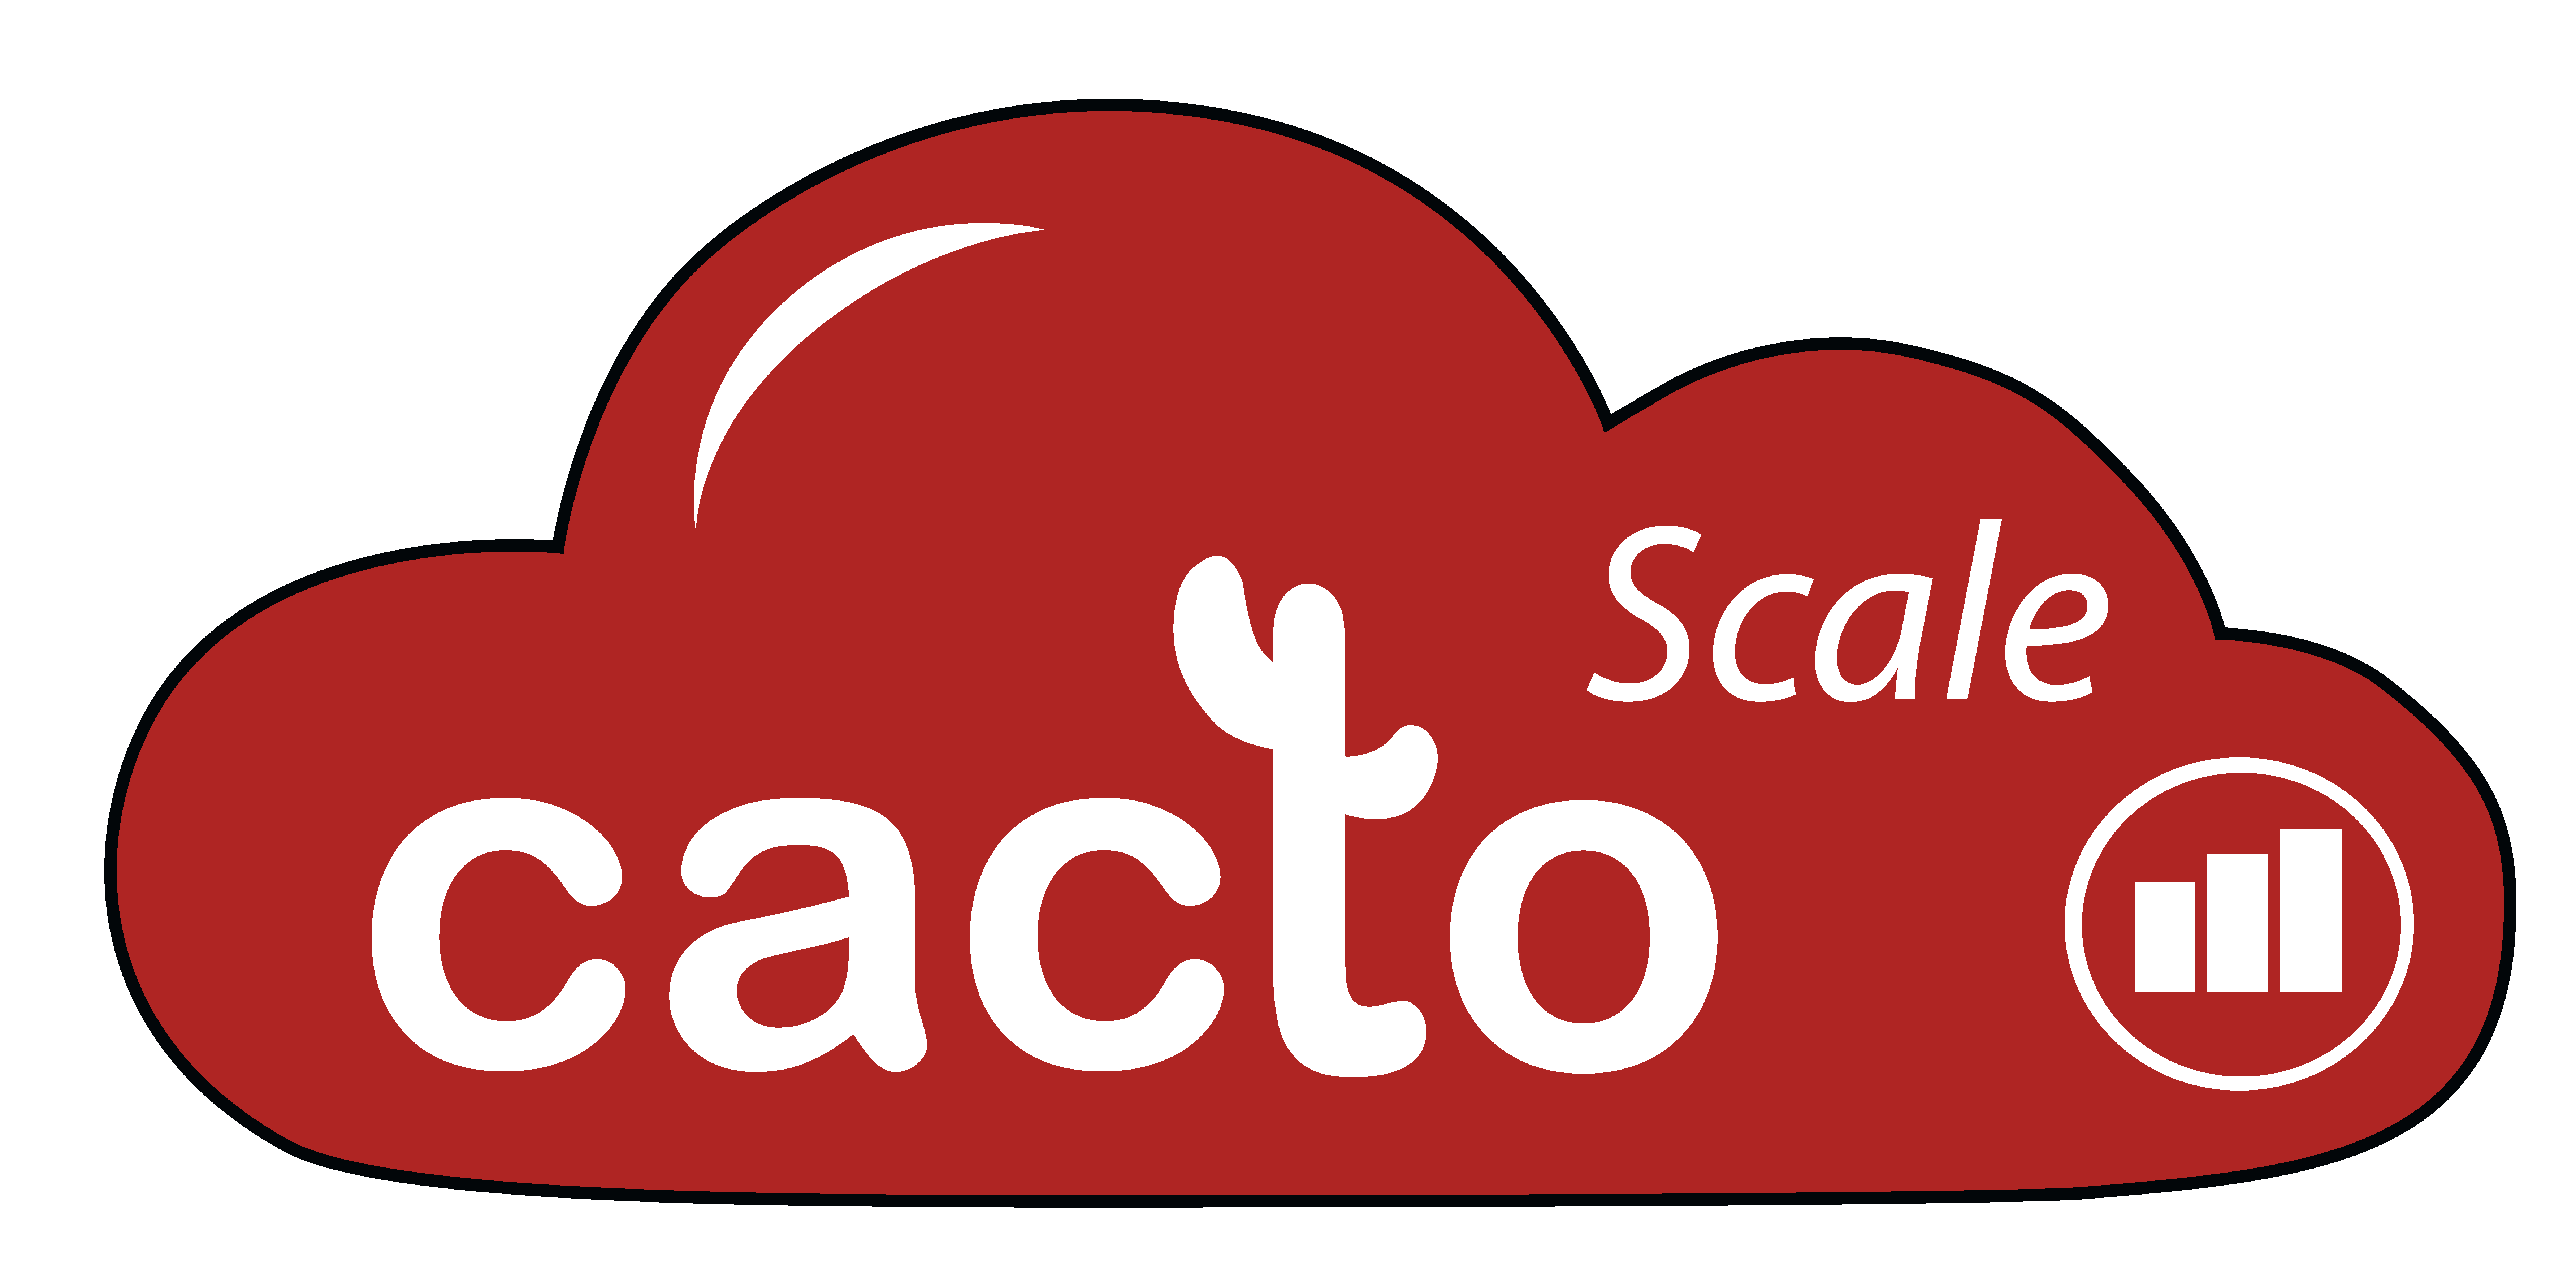 Discover CactoScale